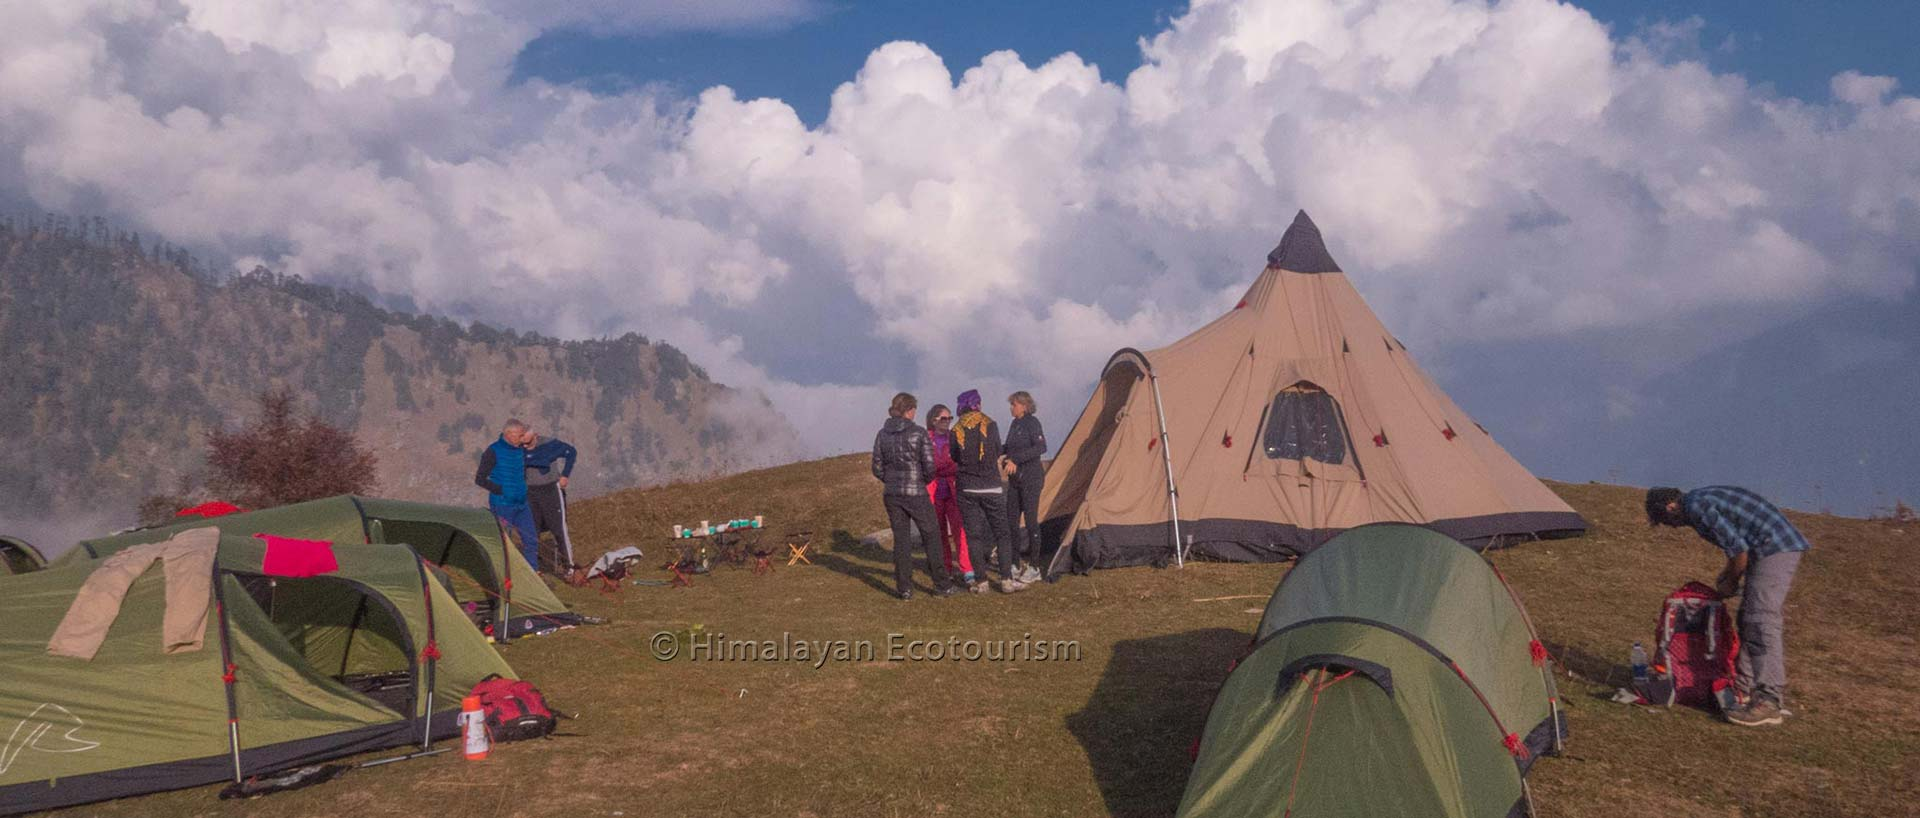 trek in the Great Himalayan National Park GHNP - accommodation camp